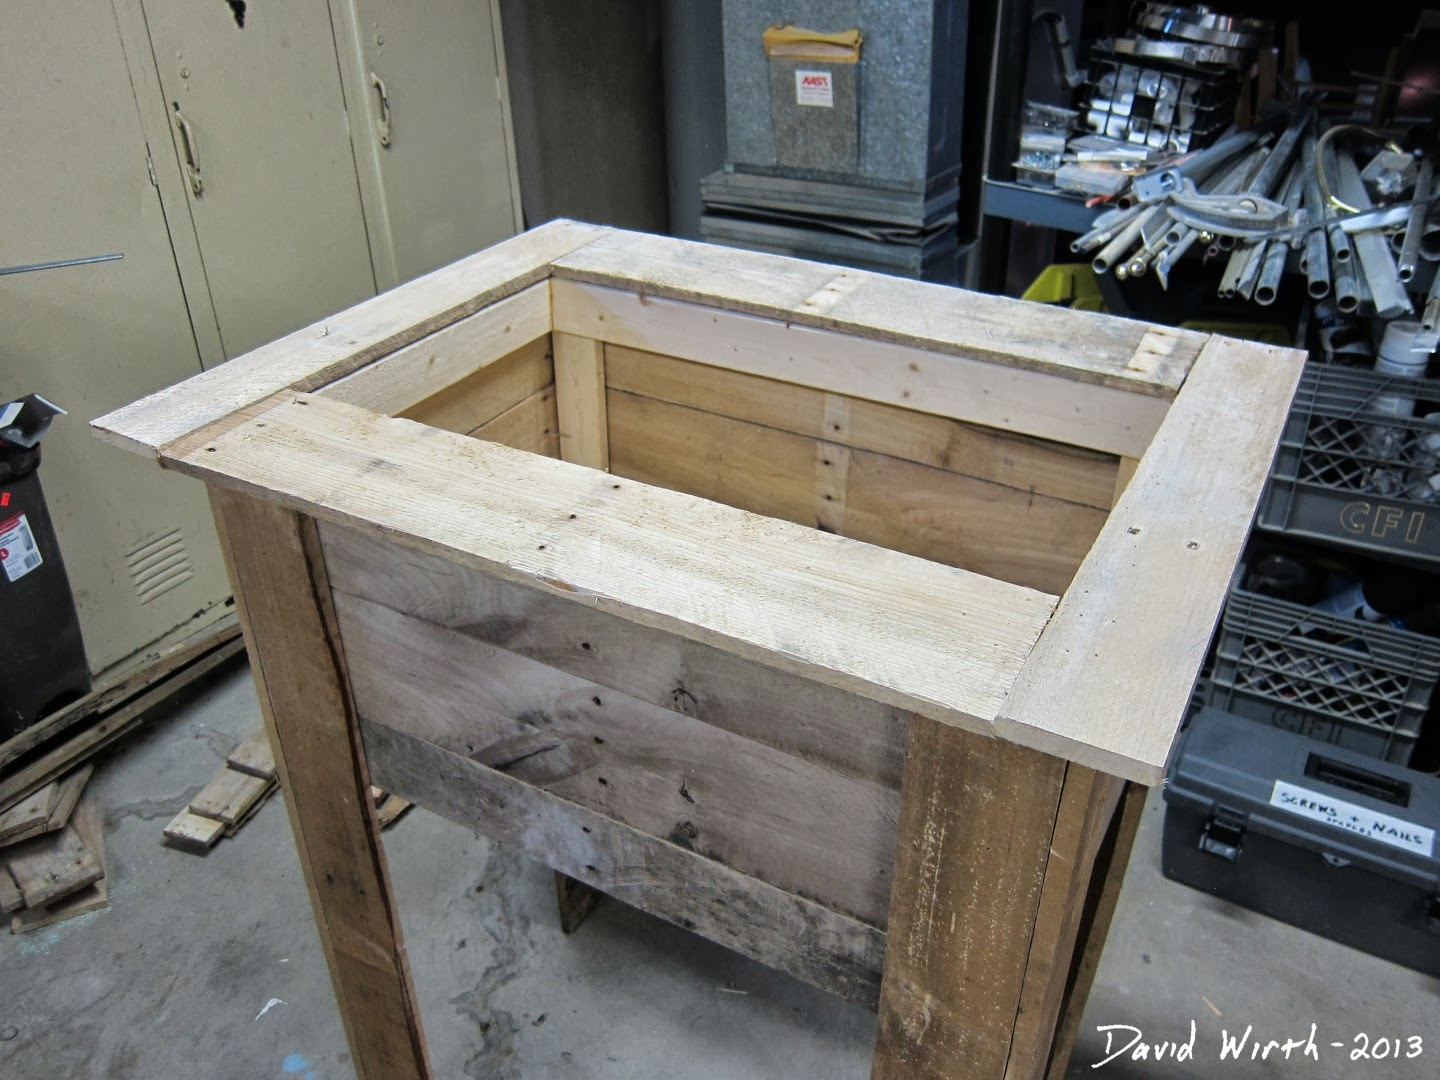 was done I started to make the lid which would cover the cooler ...